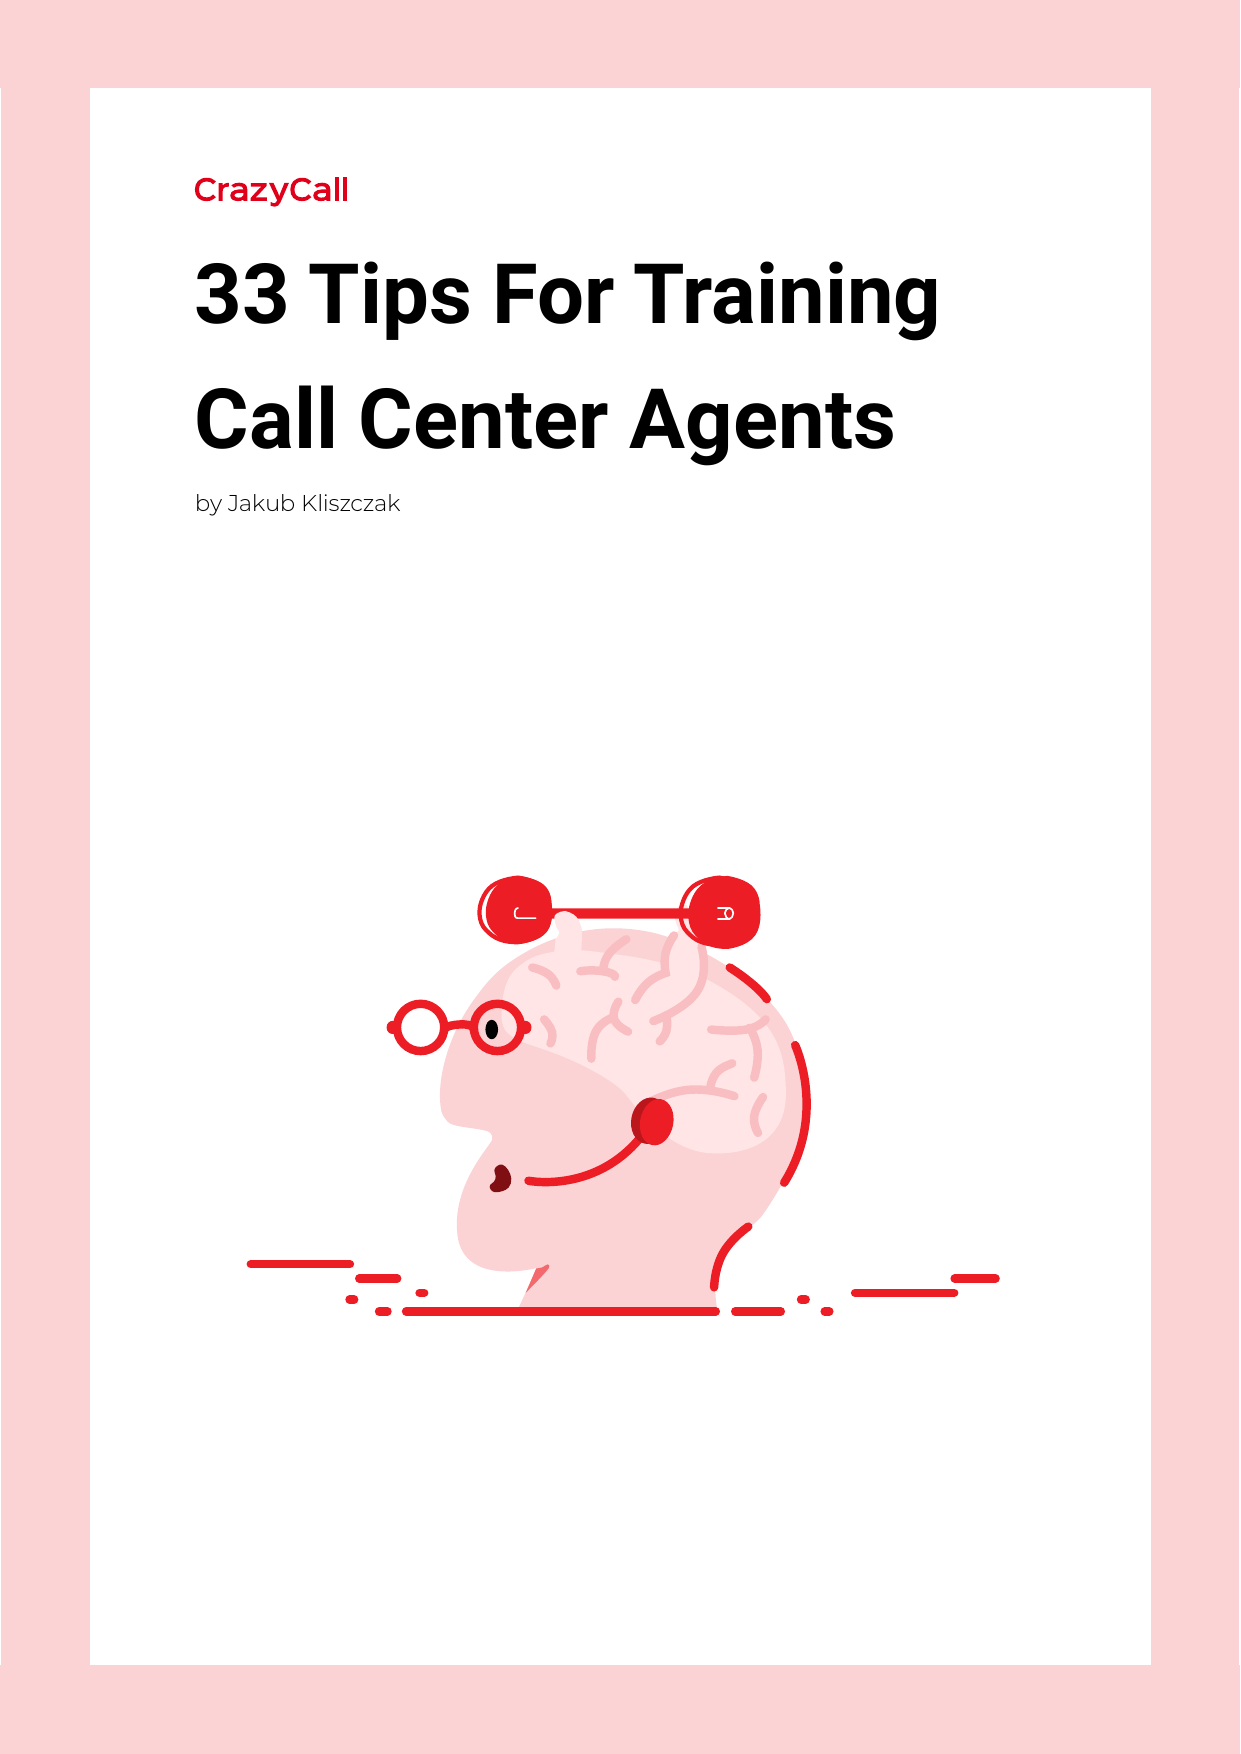 33 Tips For Training Call Center Agents